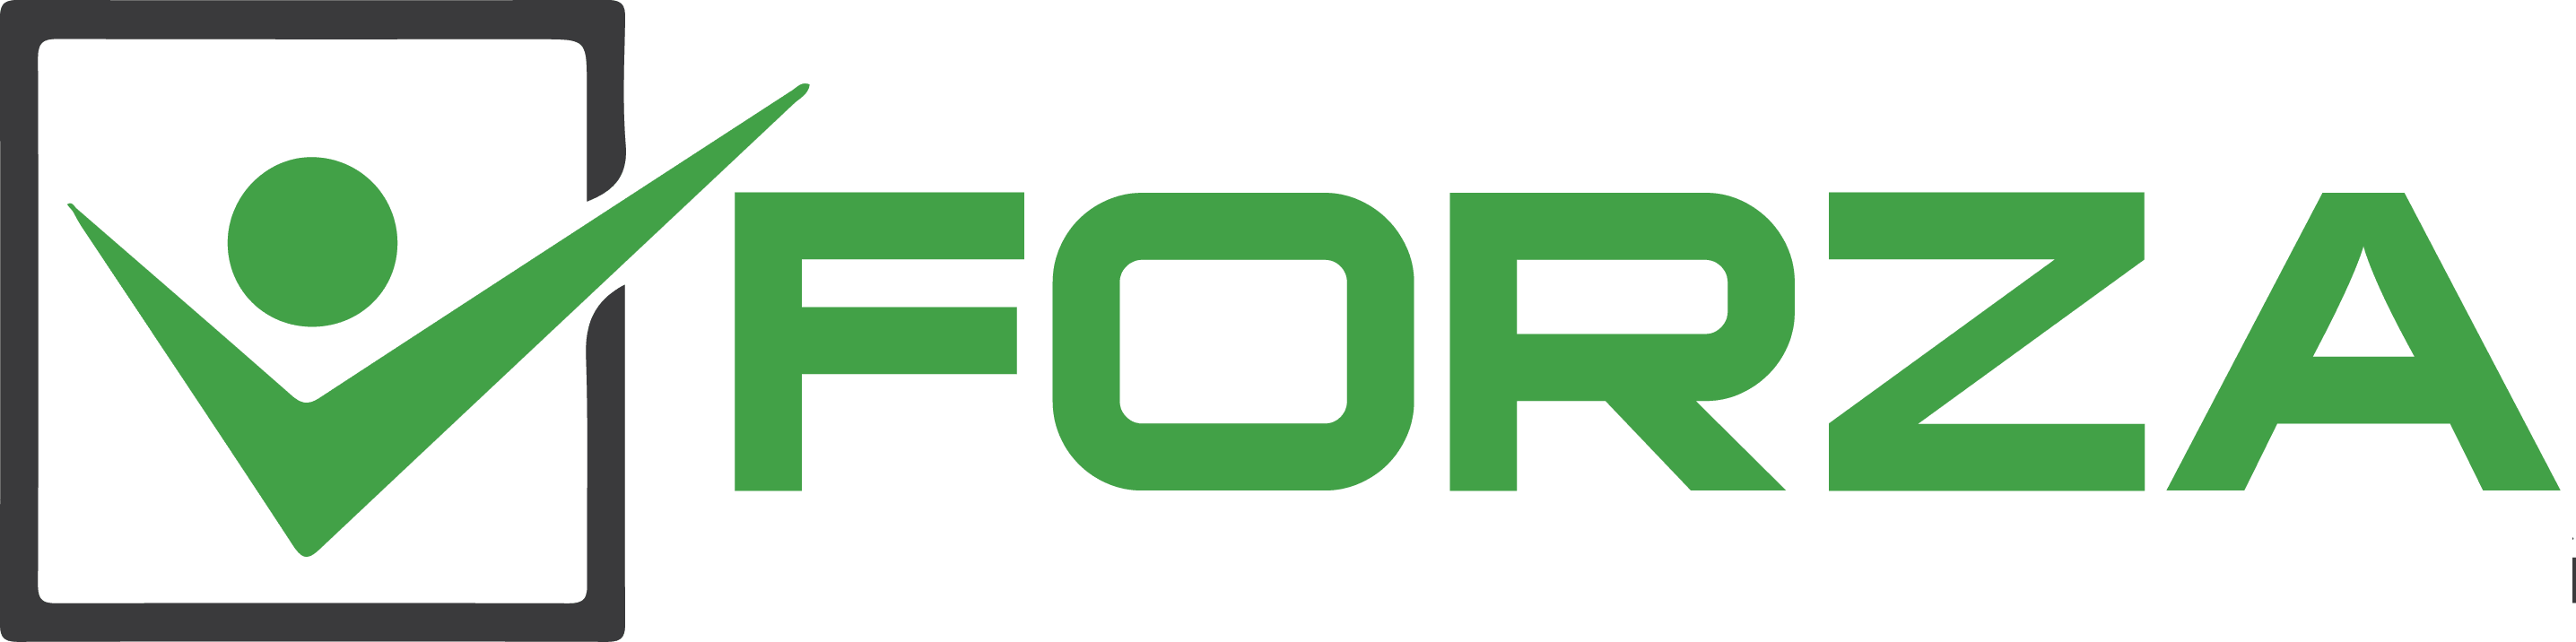 portland digital marketing agency services forza logo transparent